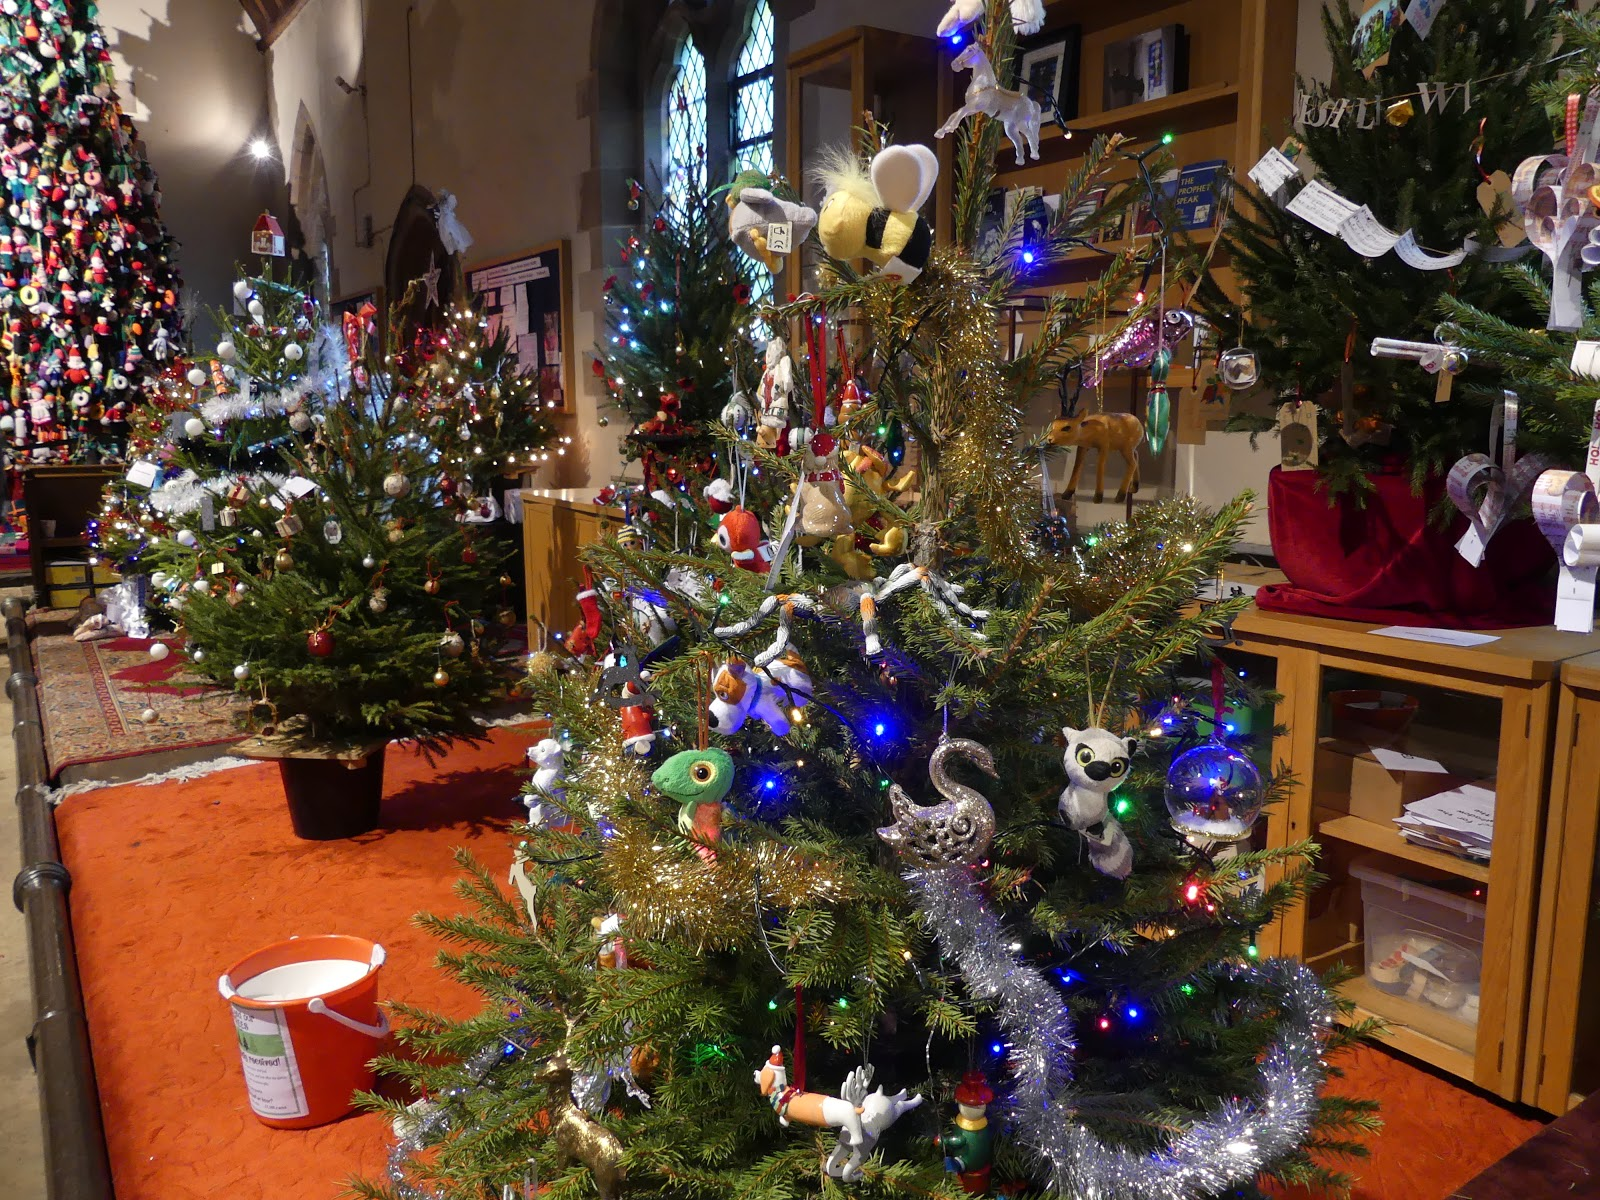 I Havenu0027t Really Had Much To Blog About Recently. We Went To A Concert Of  Festive Music And Carols At Middleton Hall And To See Jack And The  Beanstalk At ...